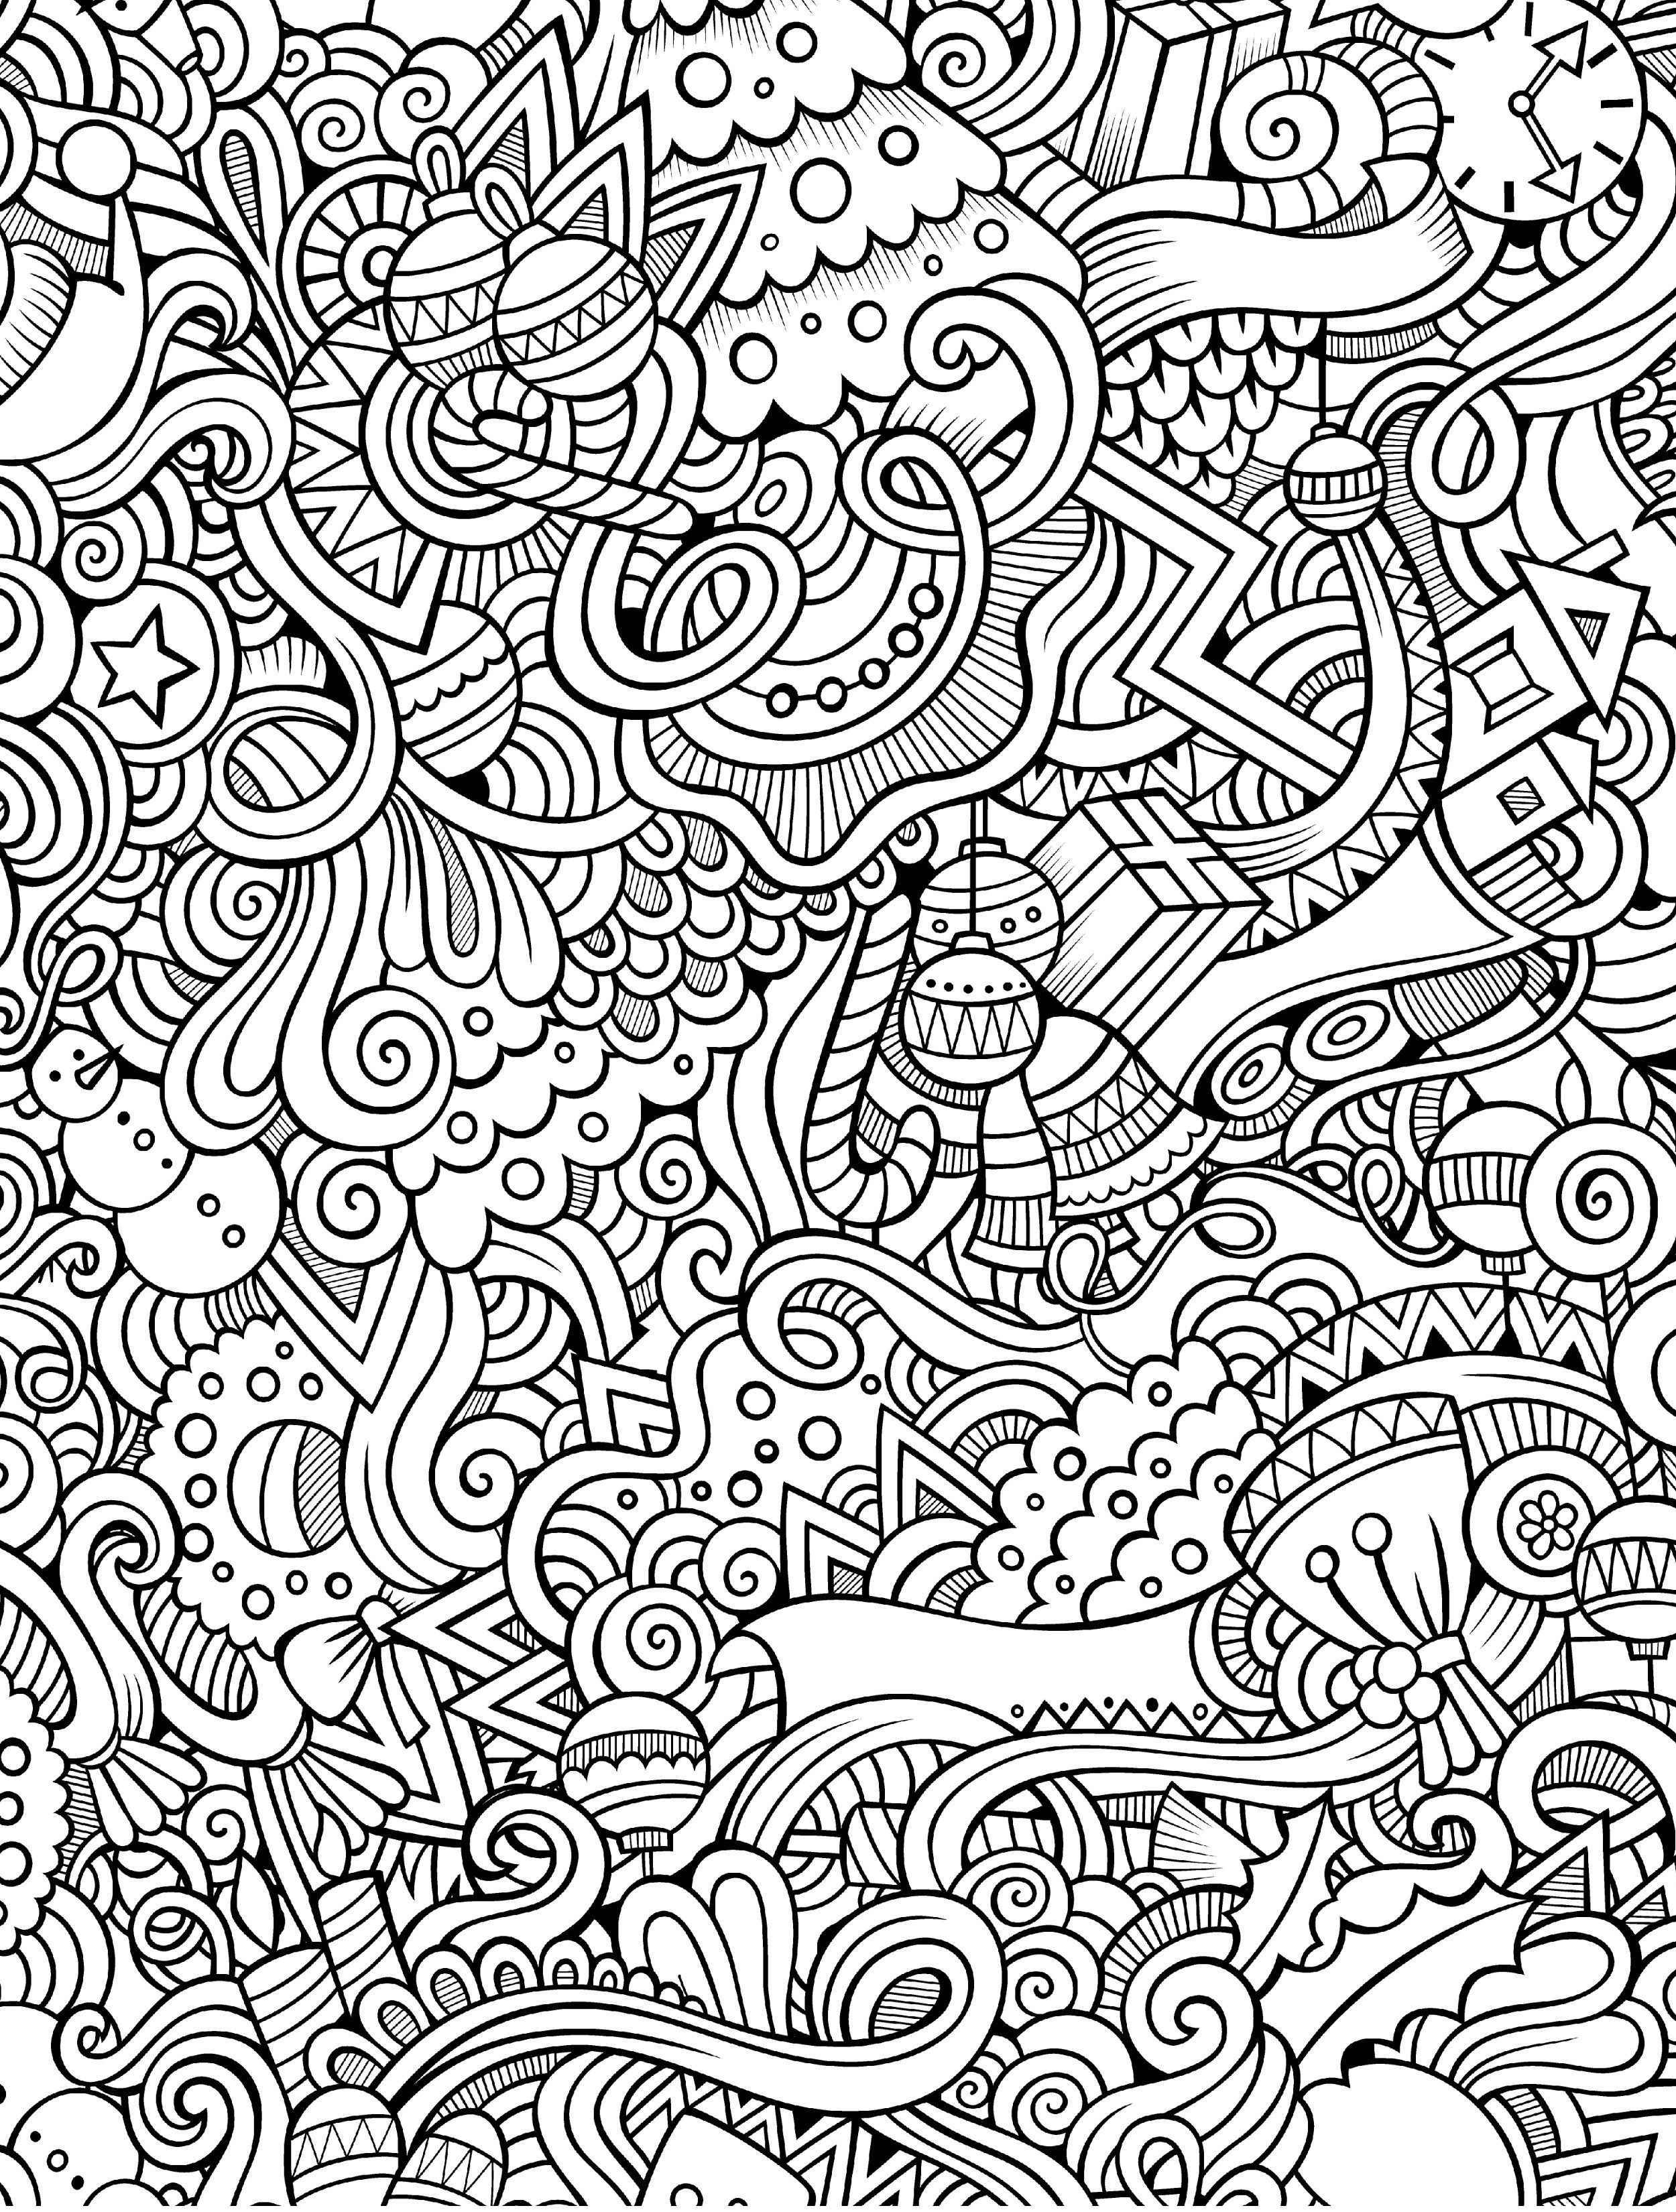 10 Free Printable Holiday Adult Coloring Pages | Coloring Pages - Free Printable Coloring Books For Adults